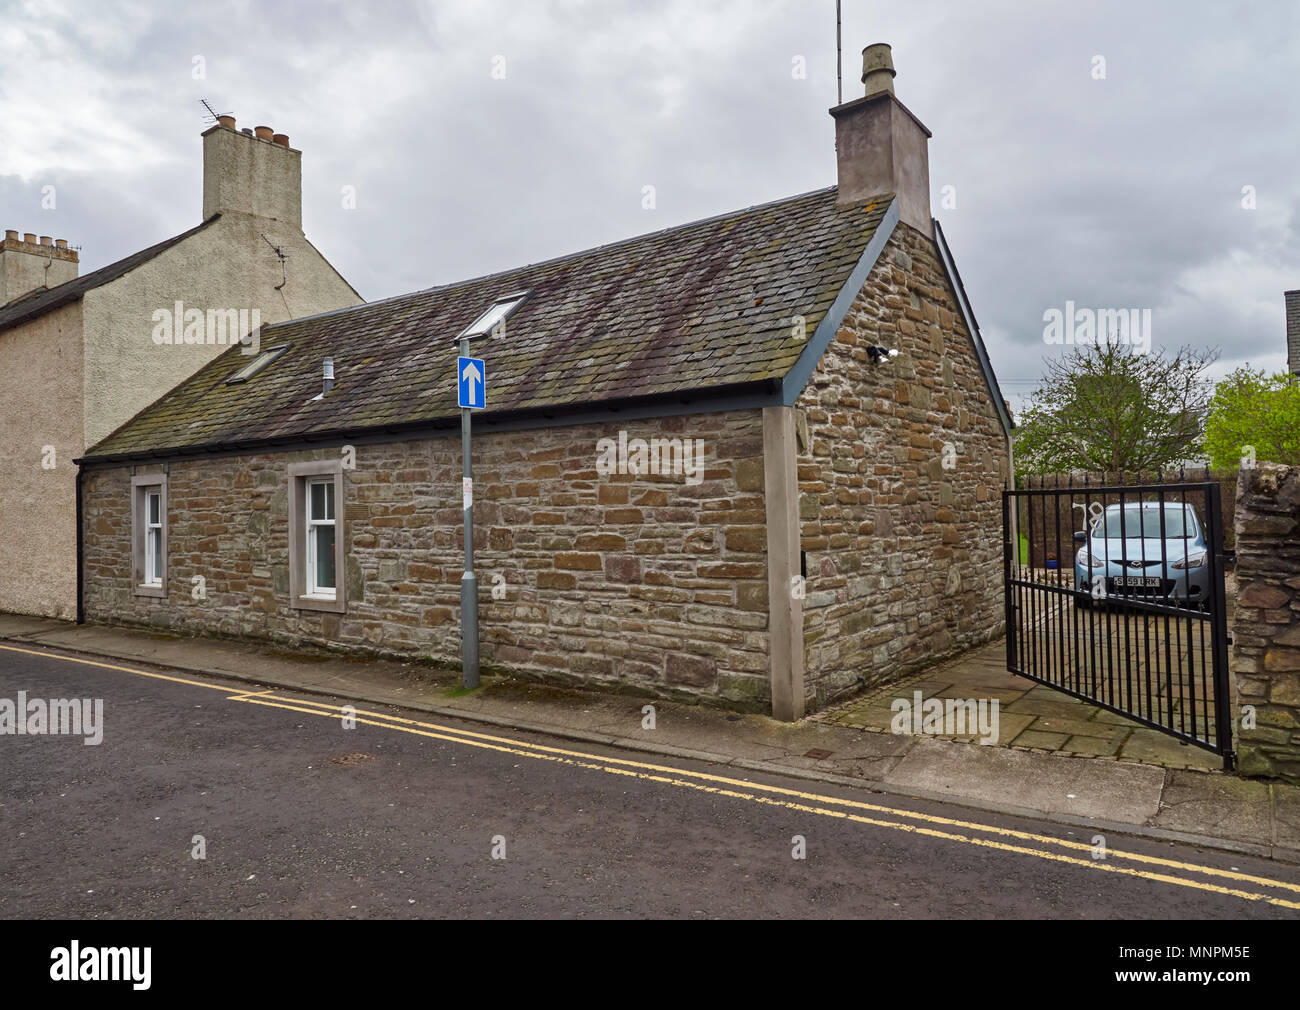 A well restored stone built, traditional Scottish terraced Cottage in Long Lane in Broughty Ferry, Dundee, Angus, Scotland. Stock Photo